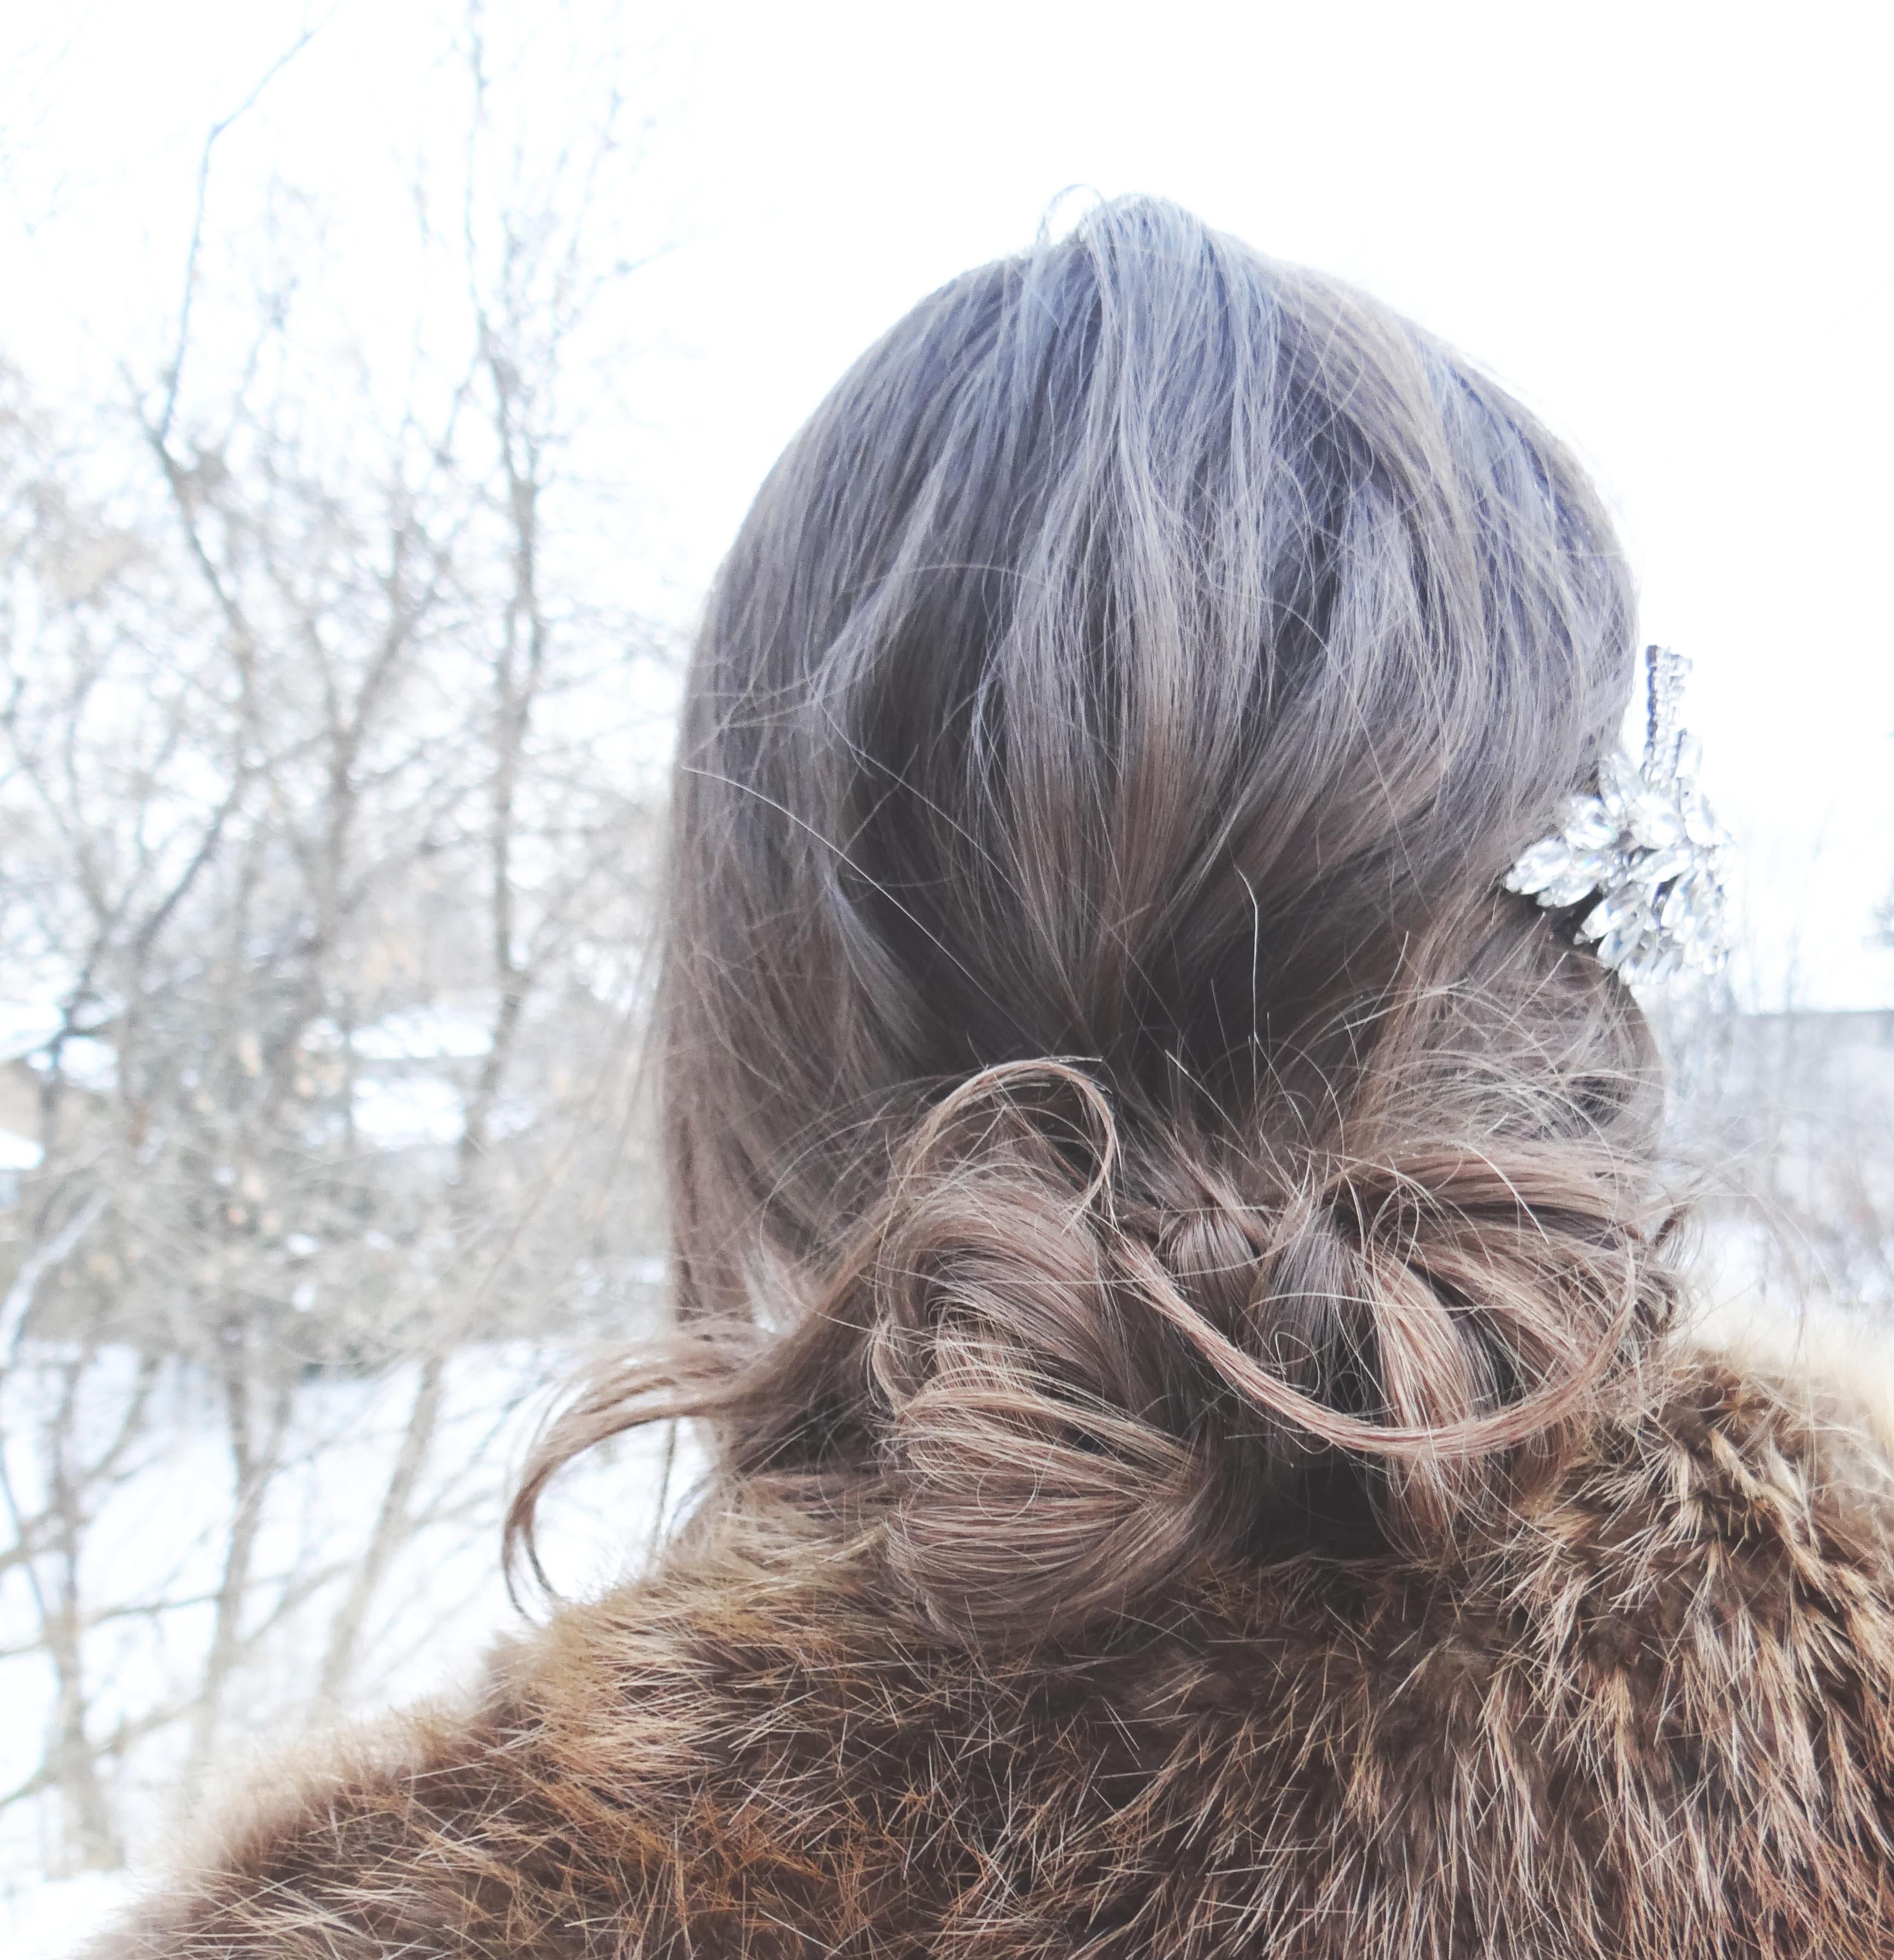 hair inspiration, Hair, Hairstyles, Evening hair dos, beauty, accessorize, Vintage, Hollywood Glamour, Winter Fashion, life and style, fashion blog, fashion, style, outfit, fashion blogger, style blogger, fashion styles, Victoria Simpson, A Side of Vogue